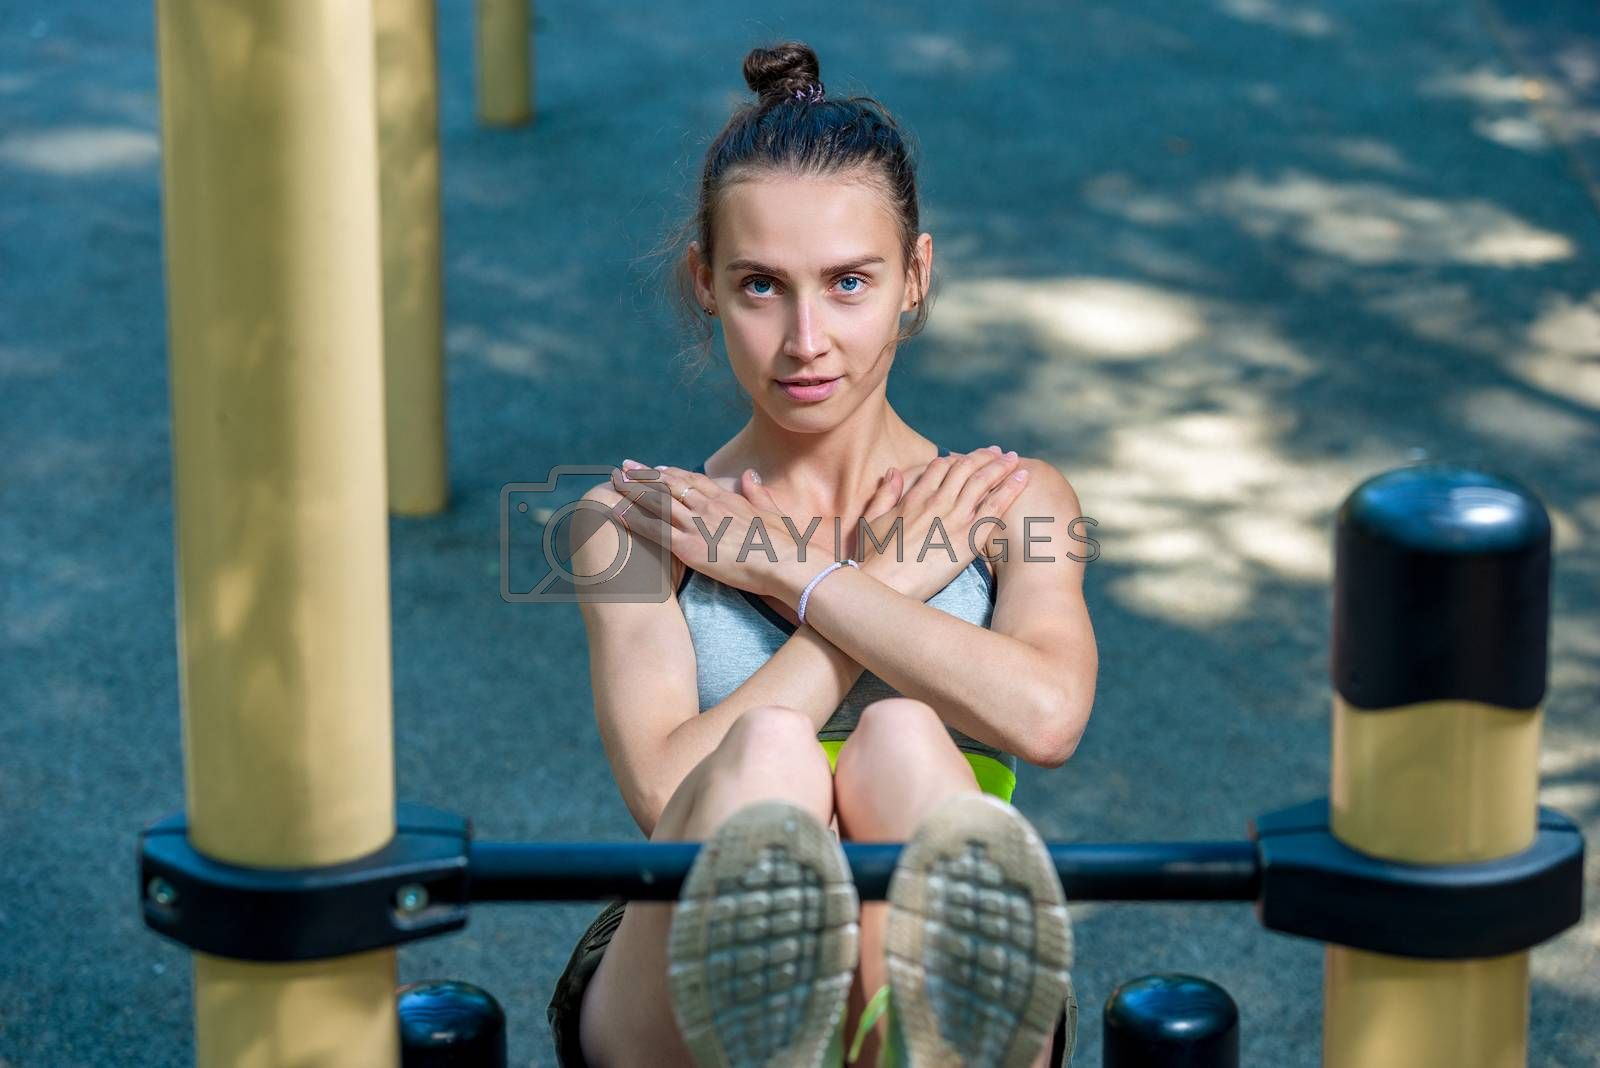 beautiful sports woman on the sports field shakes the press, exe by Labunskiy K.